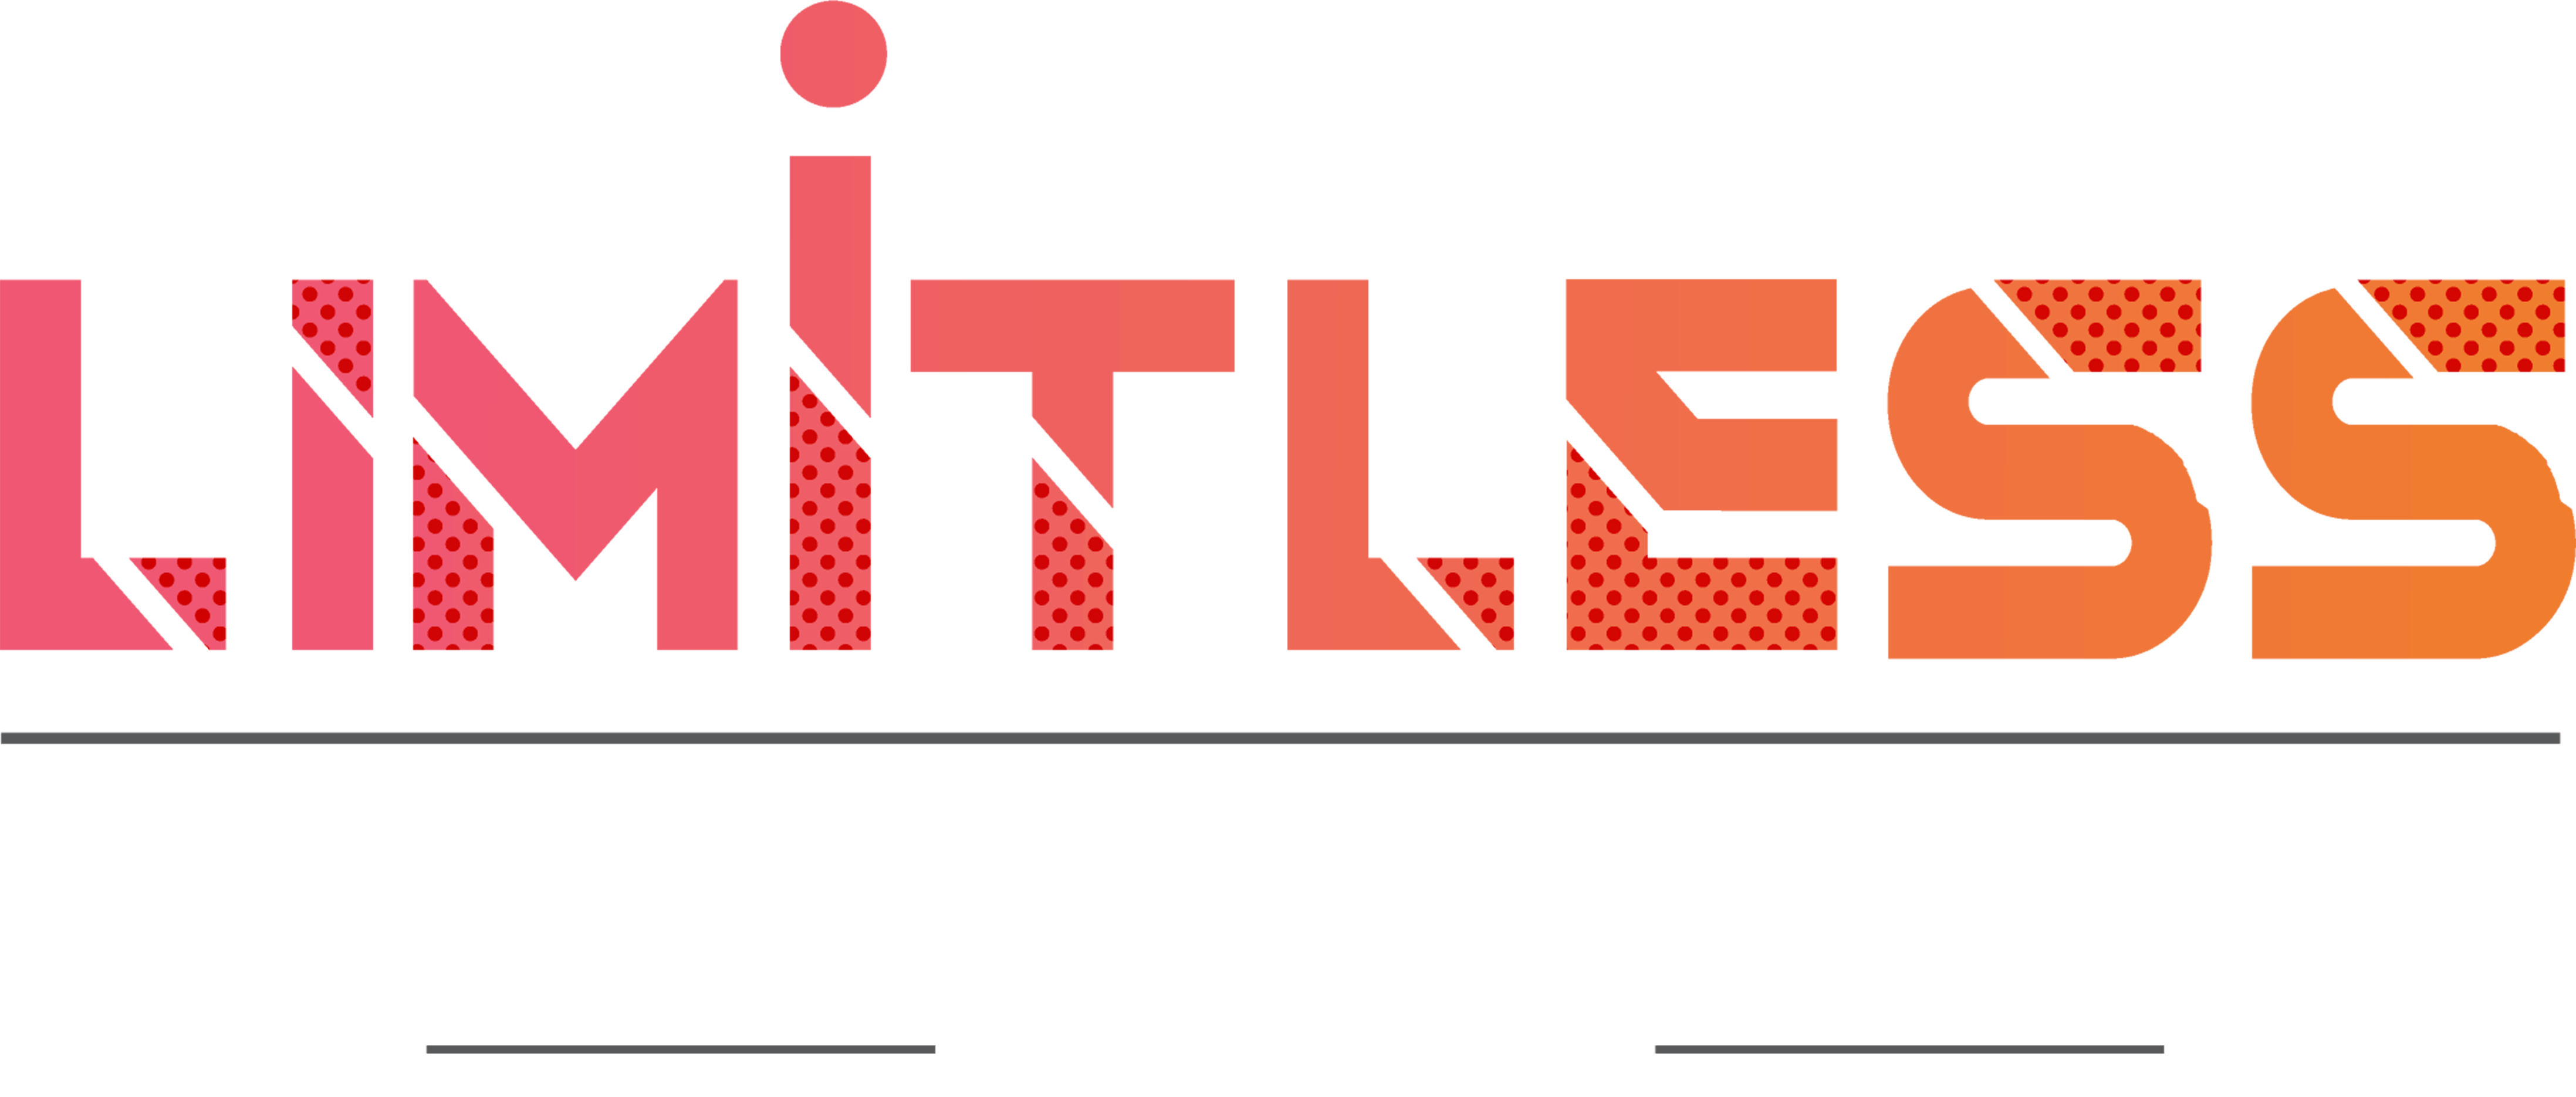 Limitless - A sales and marketing podcasts